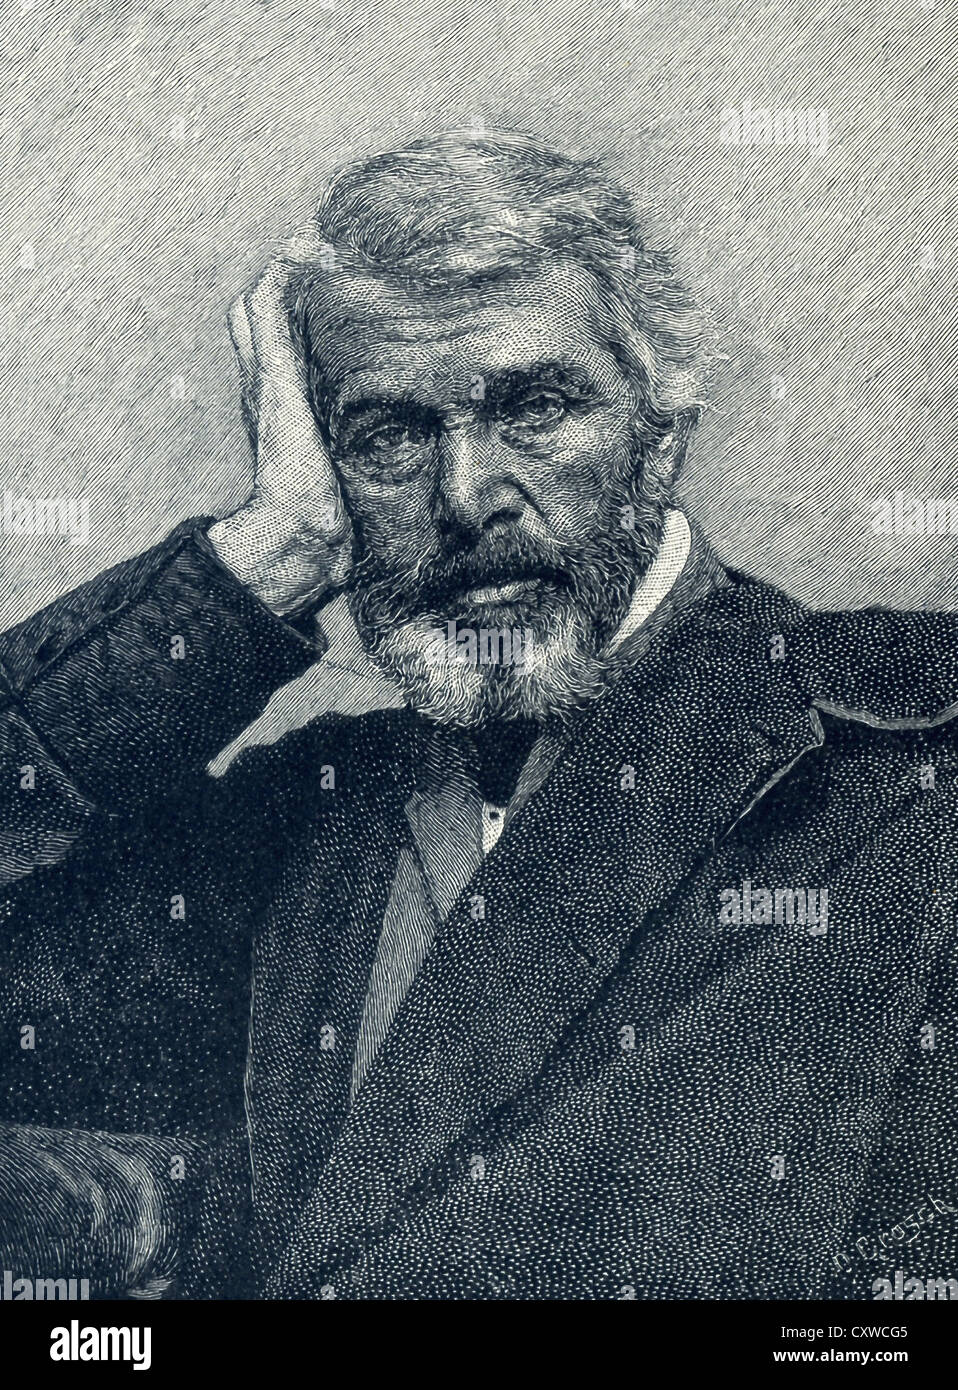 Thomas Carlyle was a British man of letters. After working as a teacher, he became the interpreter of German Romanticism. - Stock Image